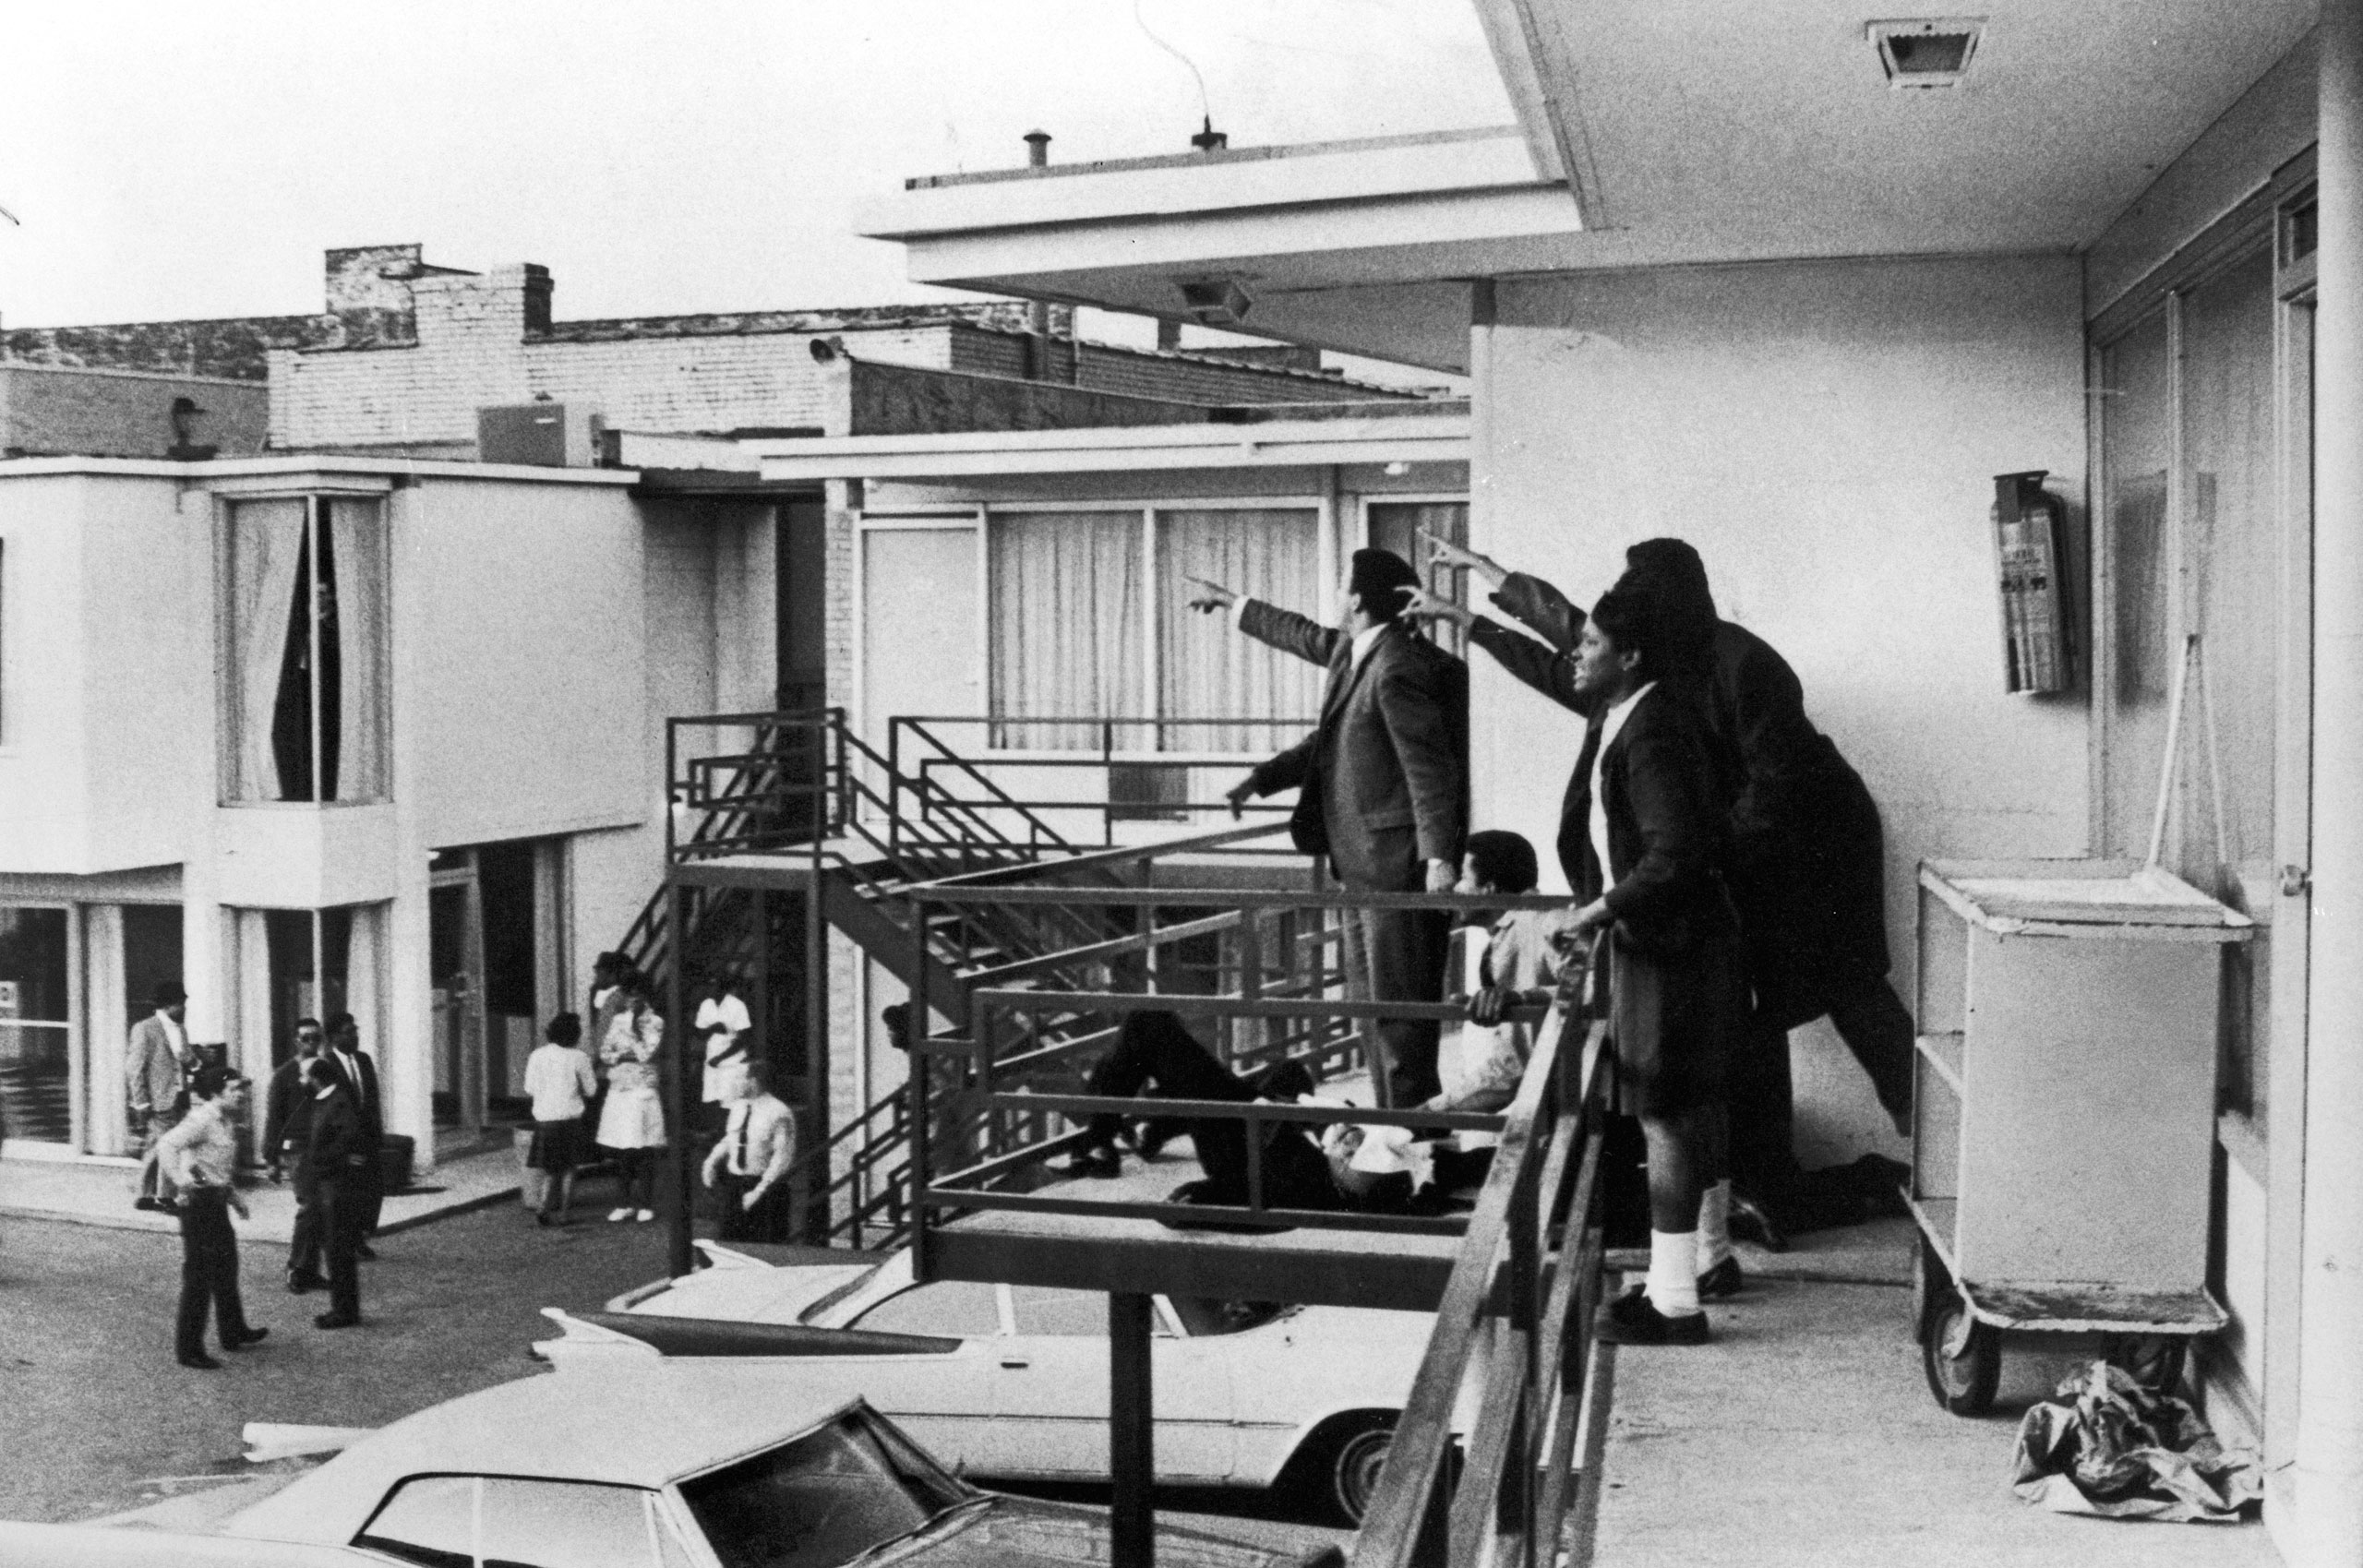 Civil rights leader Andrew Young (L) and others standing on balcony of Lorraine motel pointing in direction of assailant after assassination of civil rights ldr. Dr. Martin Luther King, Jr., who is lying at their feet.